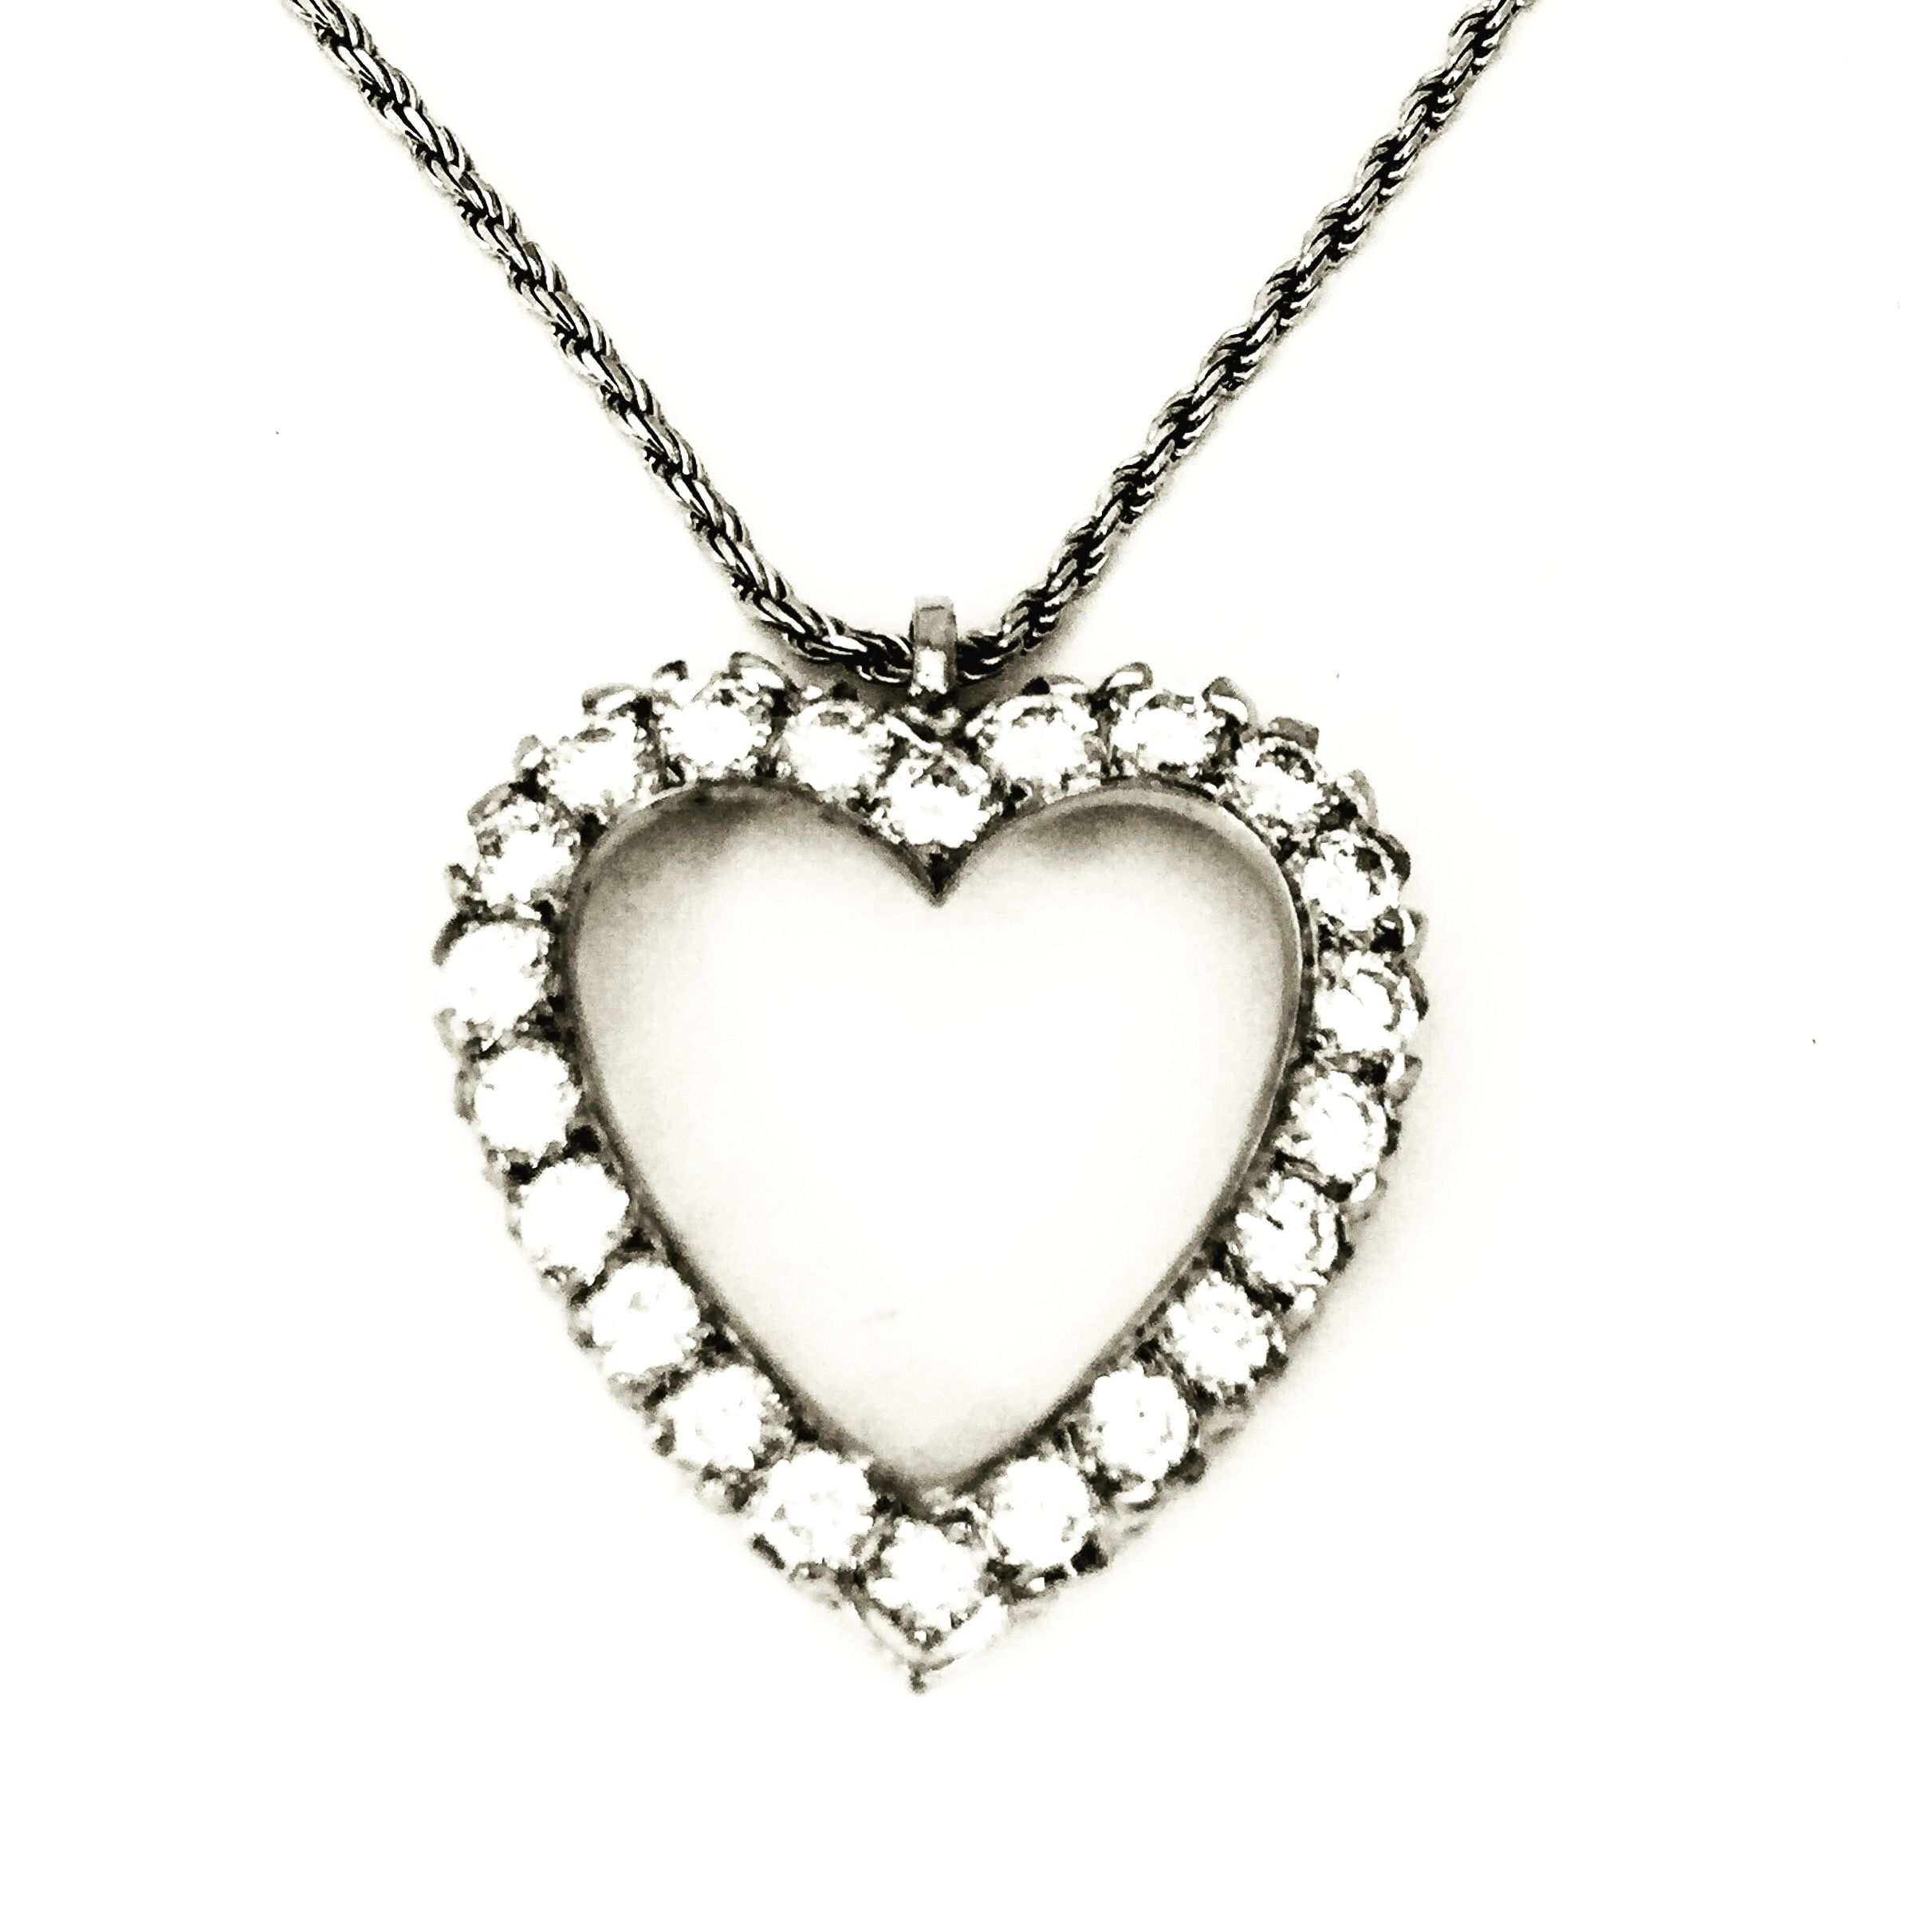 open throwing fullsizeoutput necklace heart stars jewelry long products